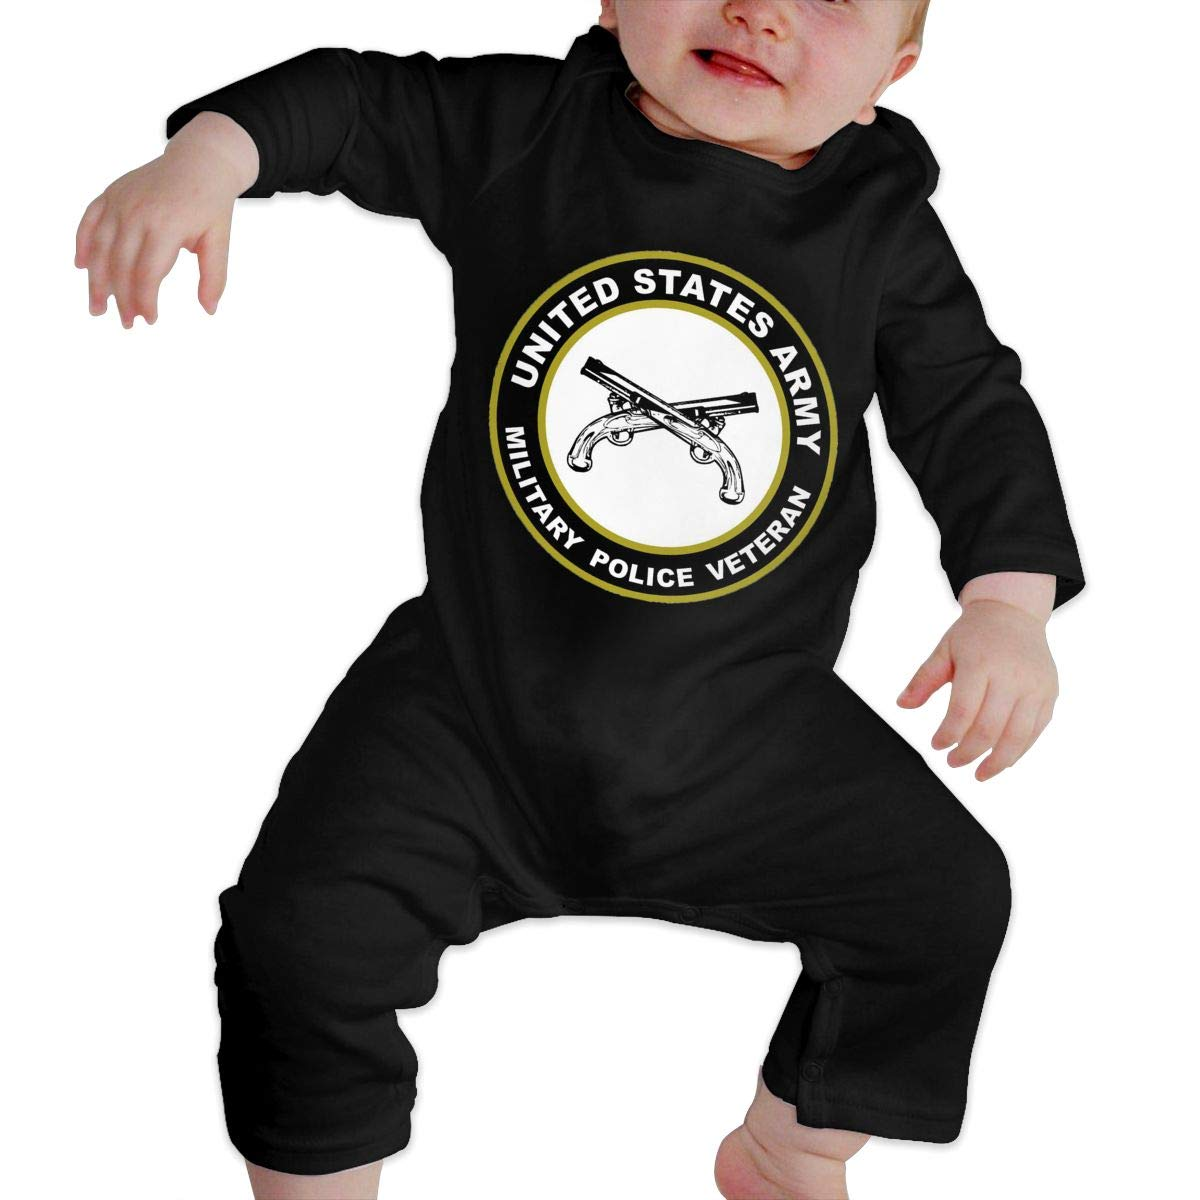 US Army Military Police Veteran Newborn Baby Long Sleeve Bodysuits Rompers Outfits